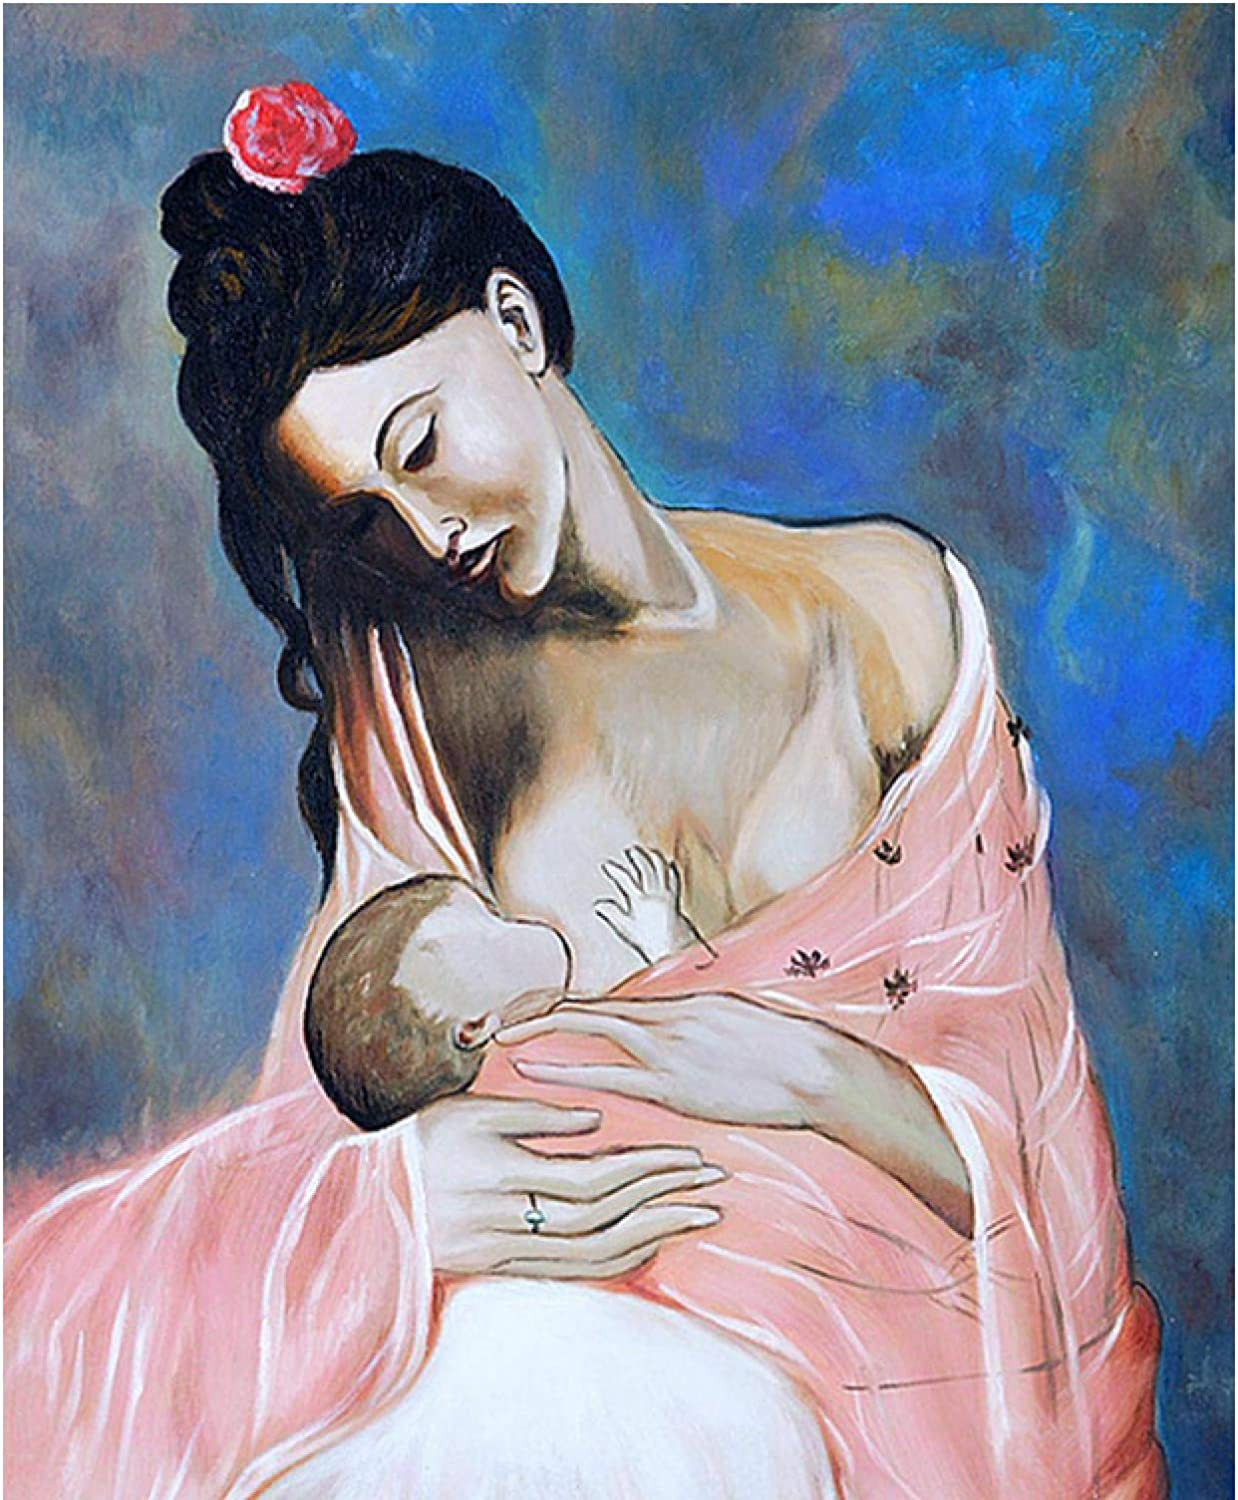 sjkkad Pablo Picasso Maternity Pregnancy Poster Wall Decoration Print for Home Wall Living Room Decor -20x28 in No Frame